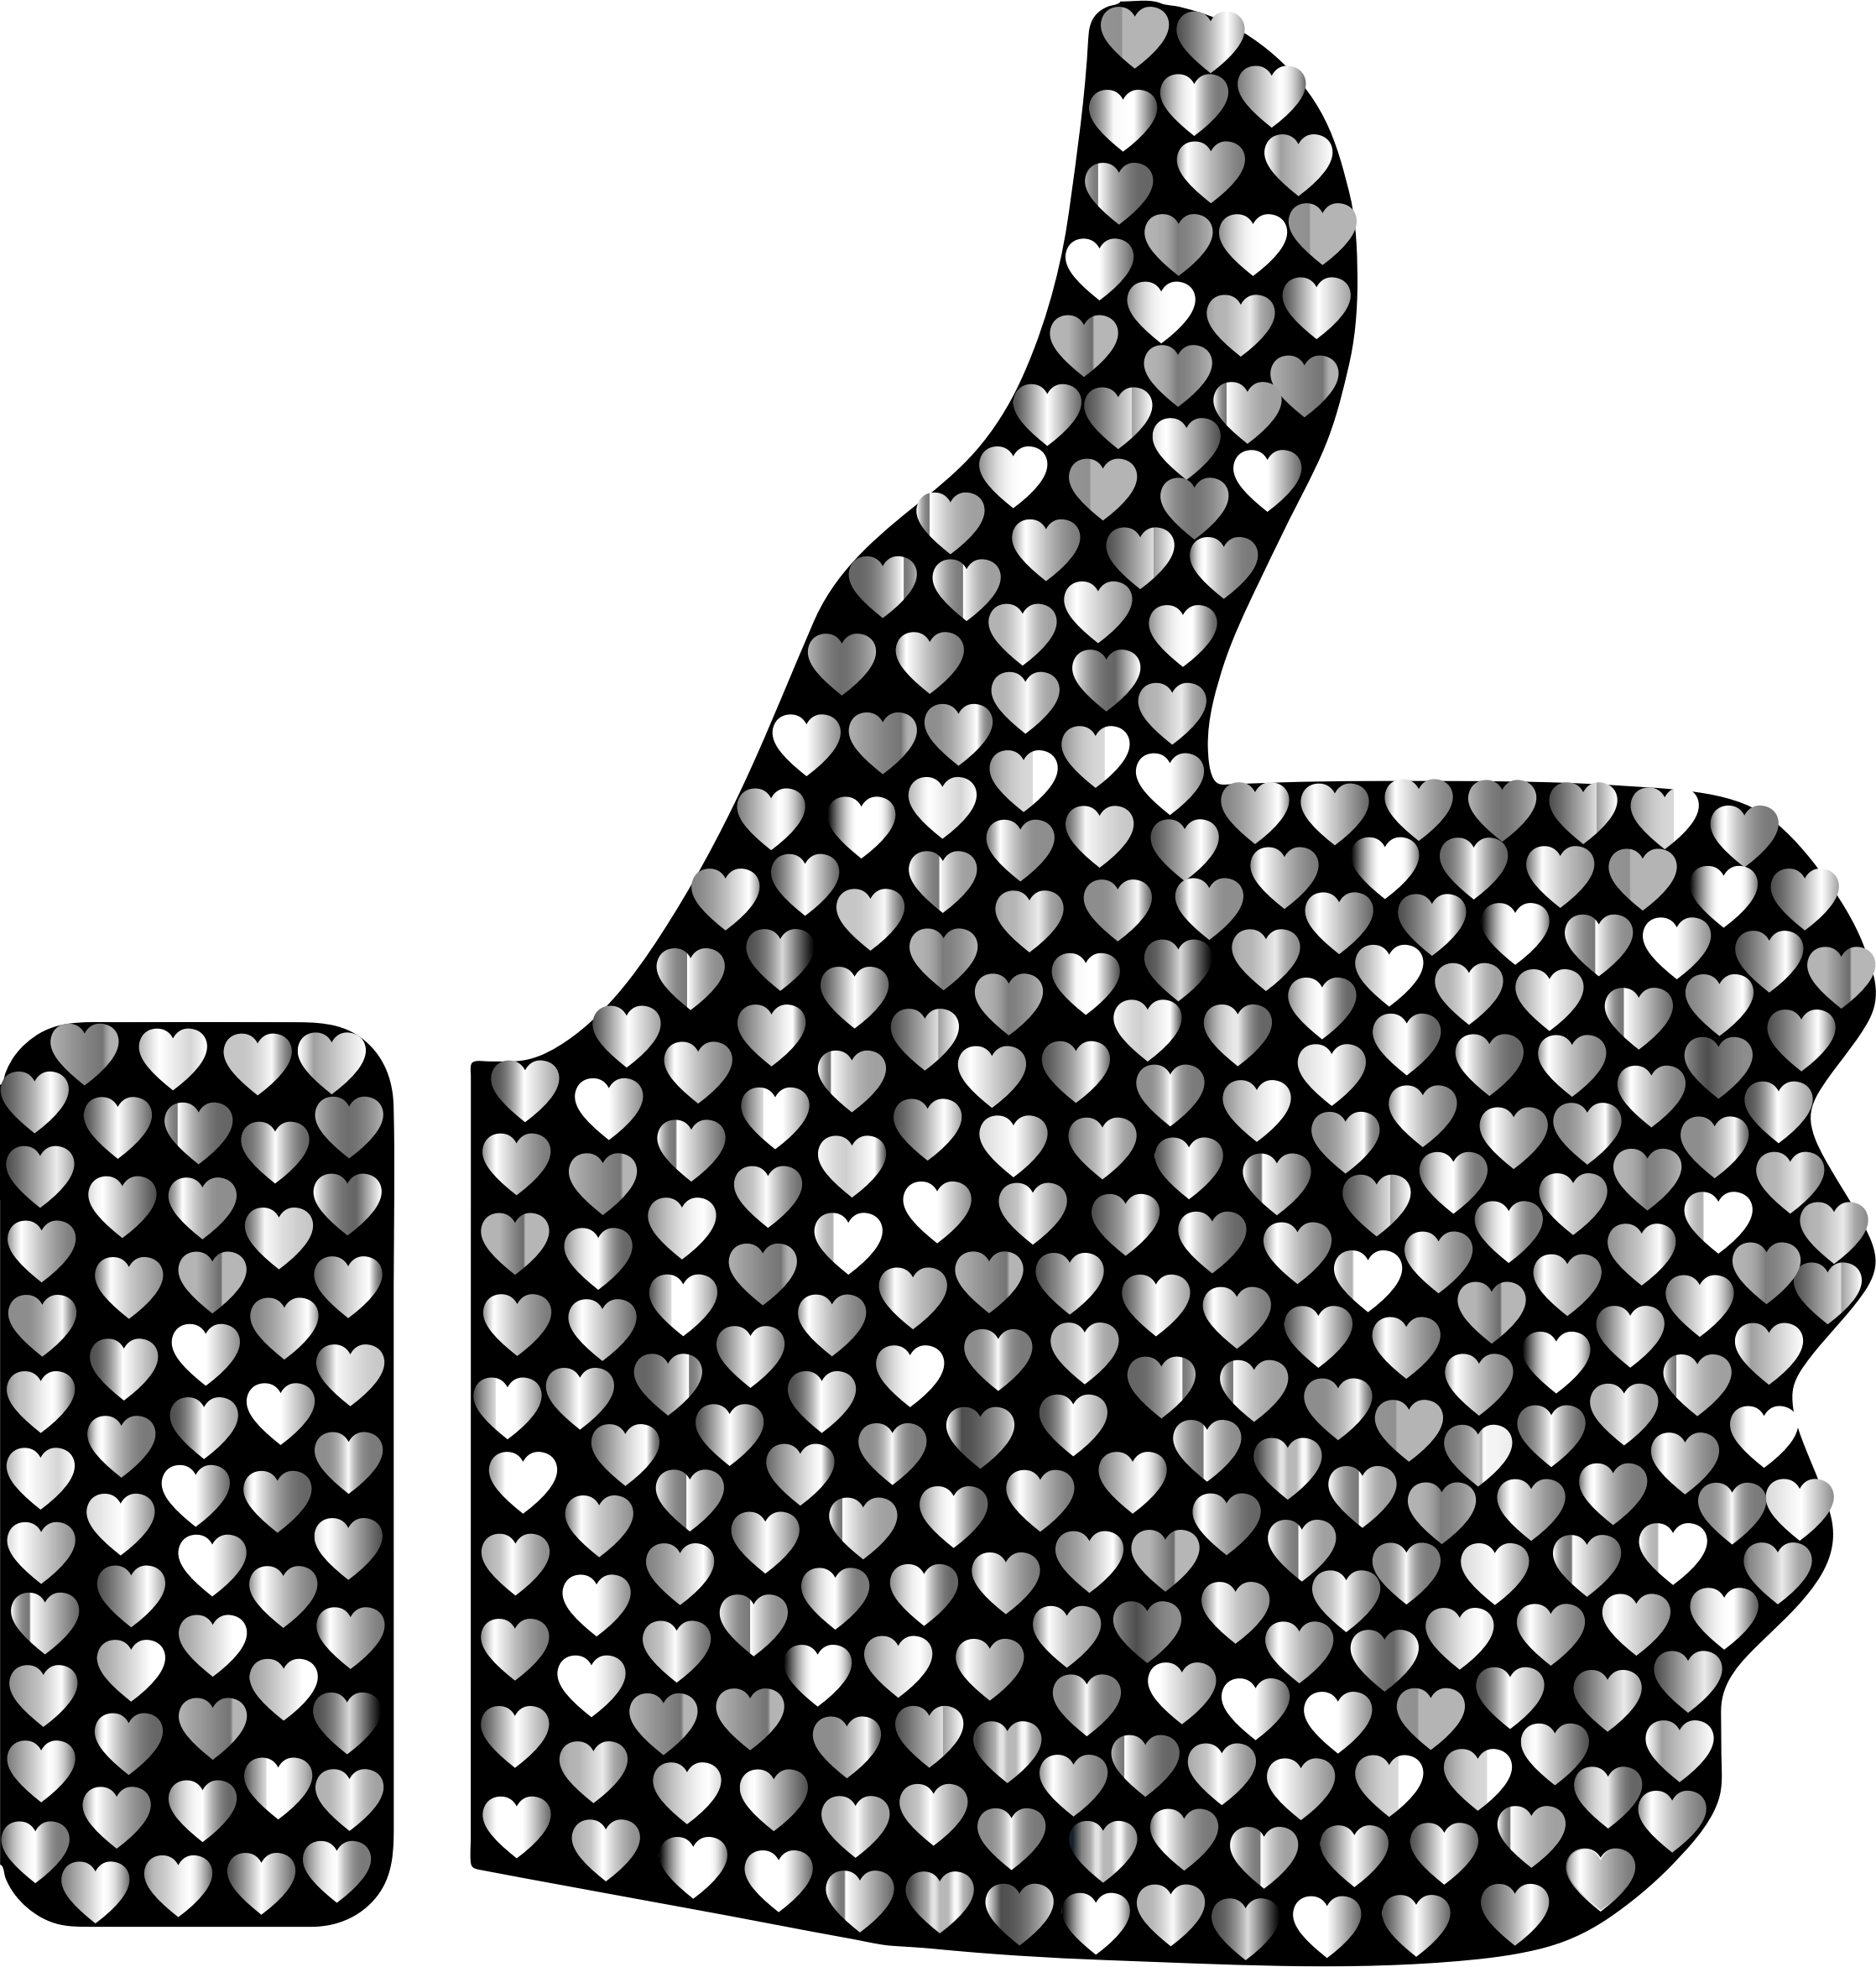 Prismatic Hearts Thumbs Up Silhouette 5 by GDJ